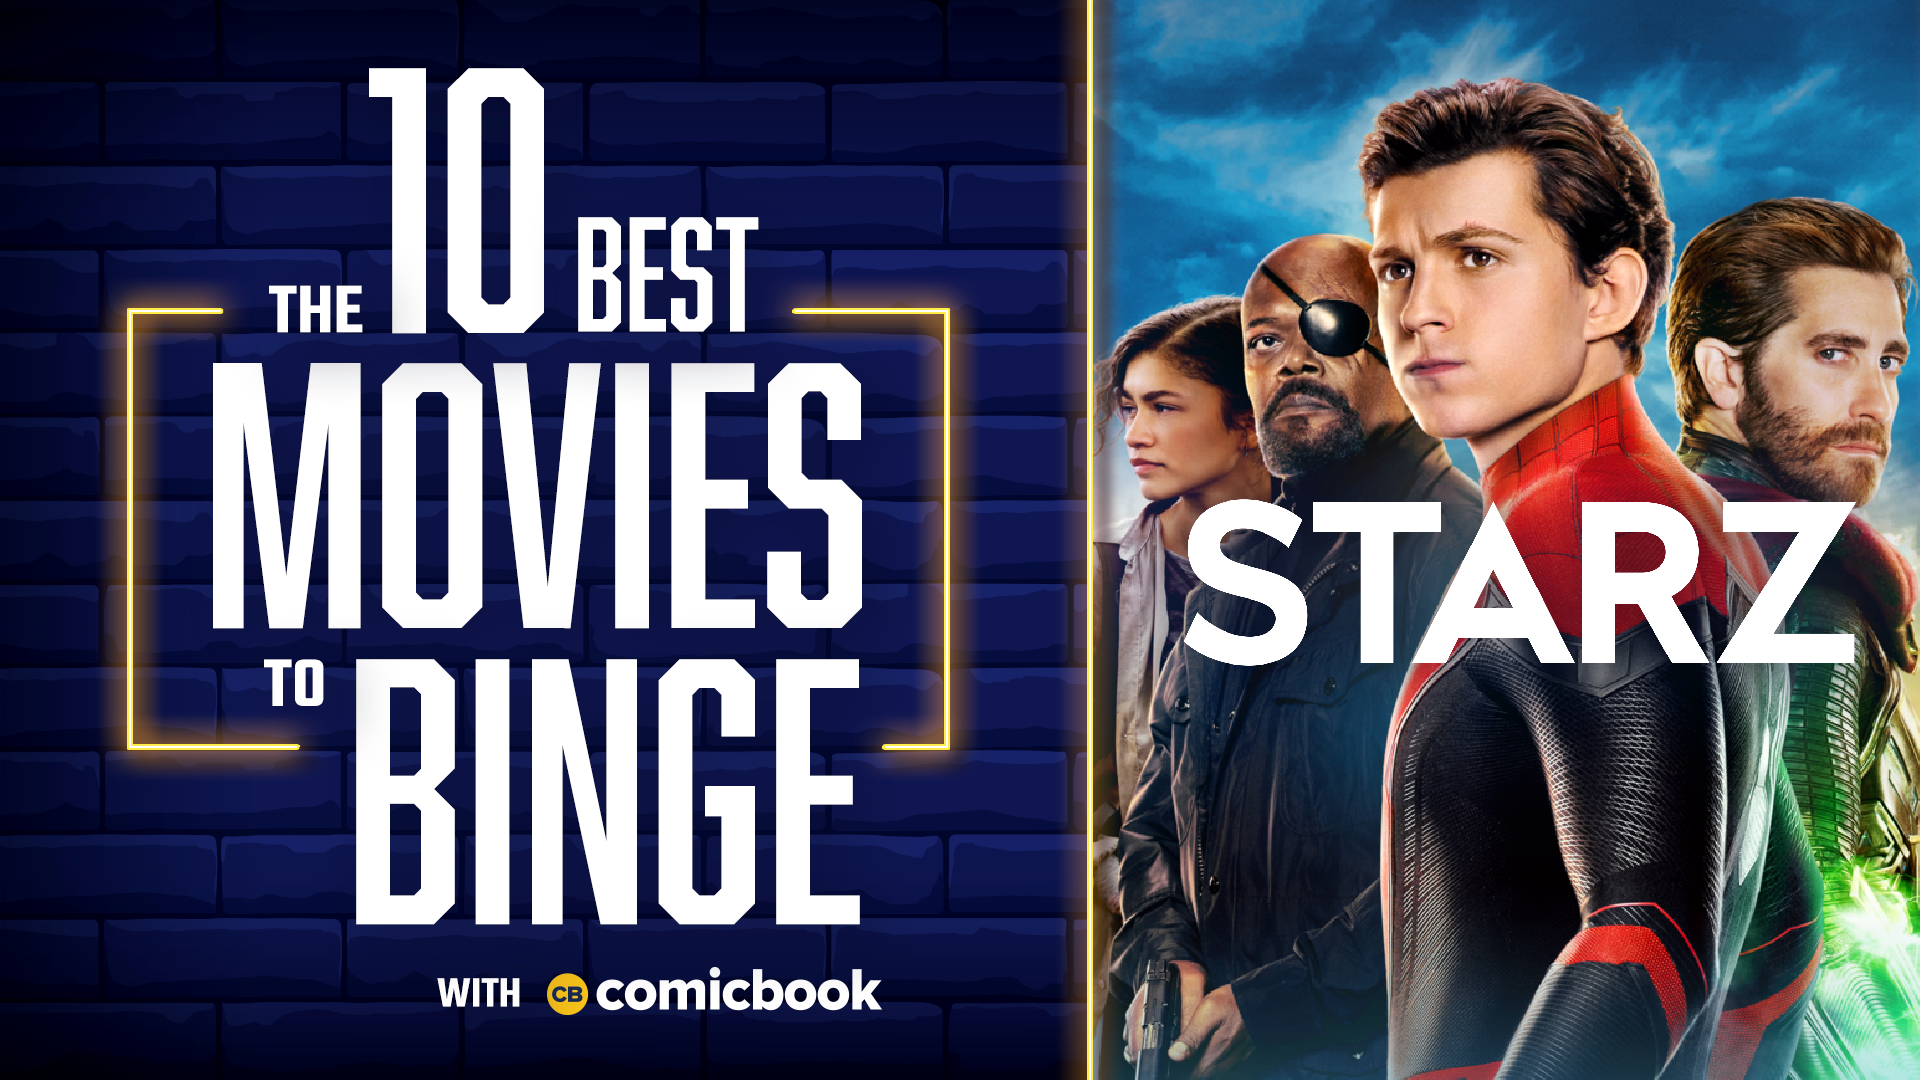 10 Best Movies to Binge on STARZ